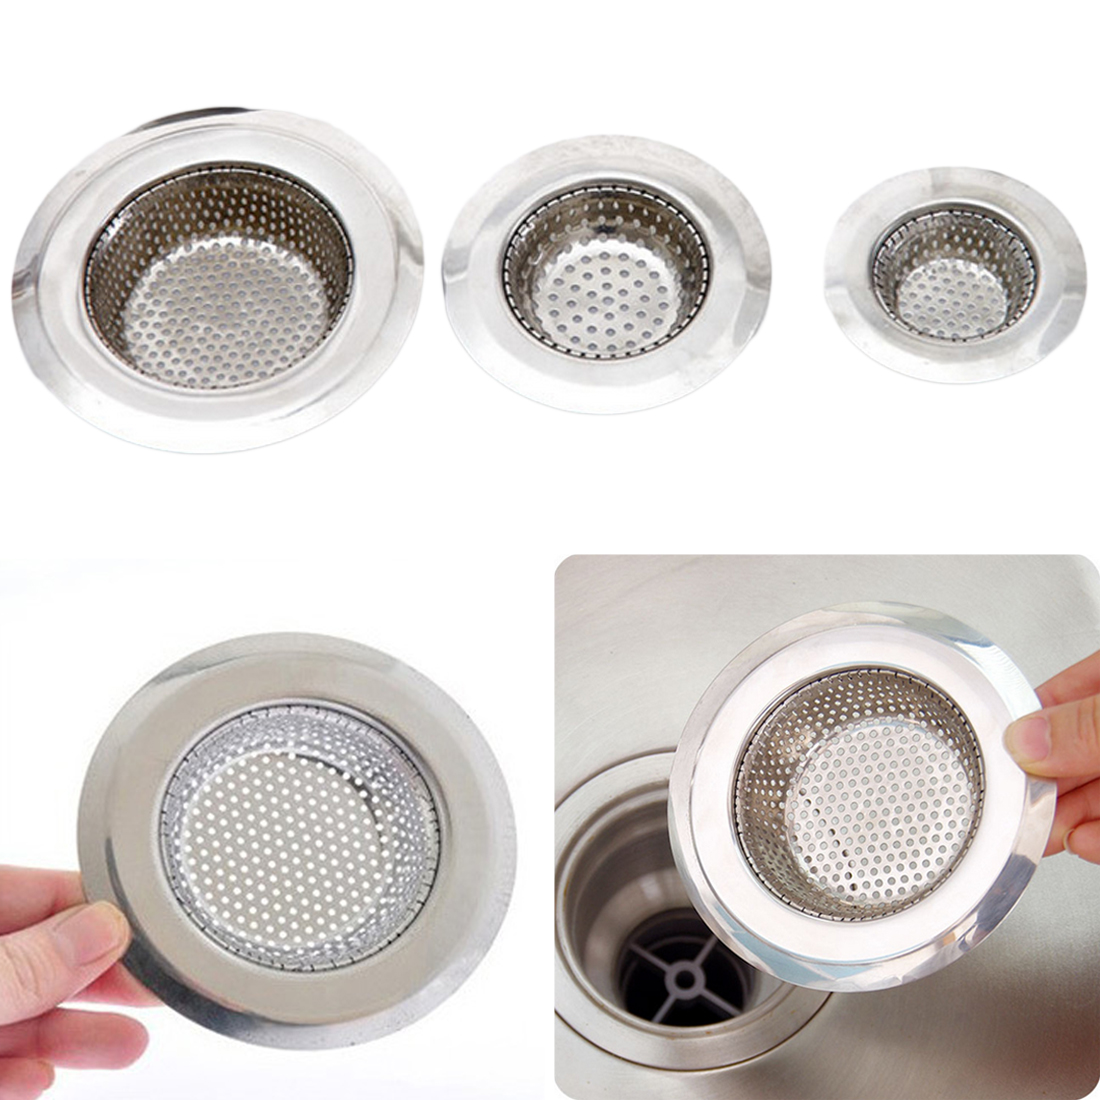 Kitchen SuppliesSink Strainer Drain Hole Filter Trap Metal Sink Strainer Stainless Steel Bath Sink Drain Waste Screen 7/9/11cm